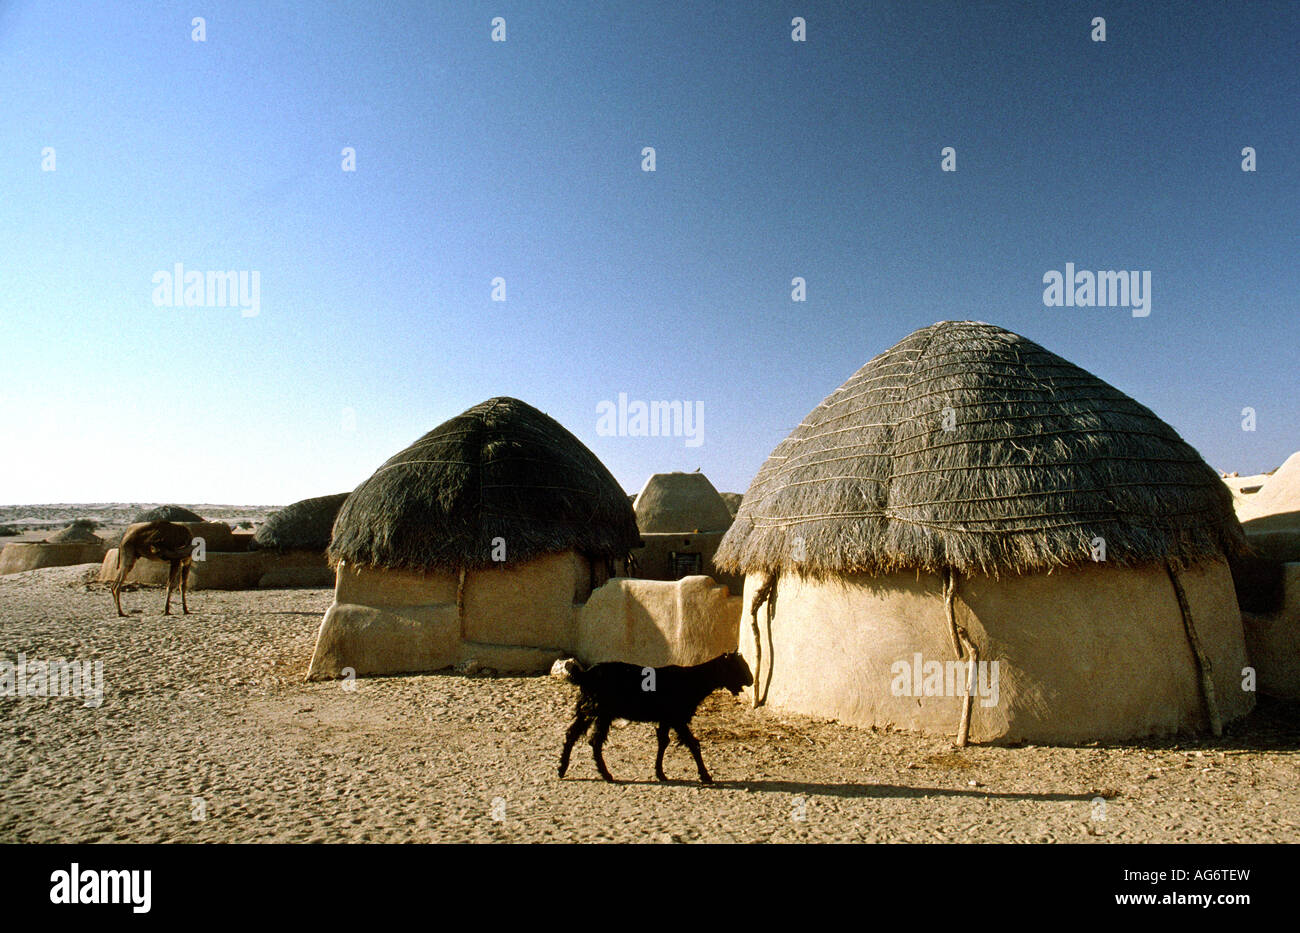 Images of traditional houses in rajasthan